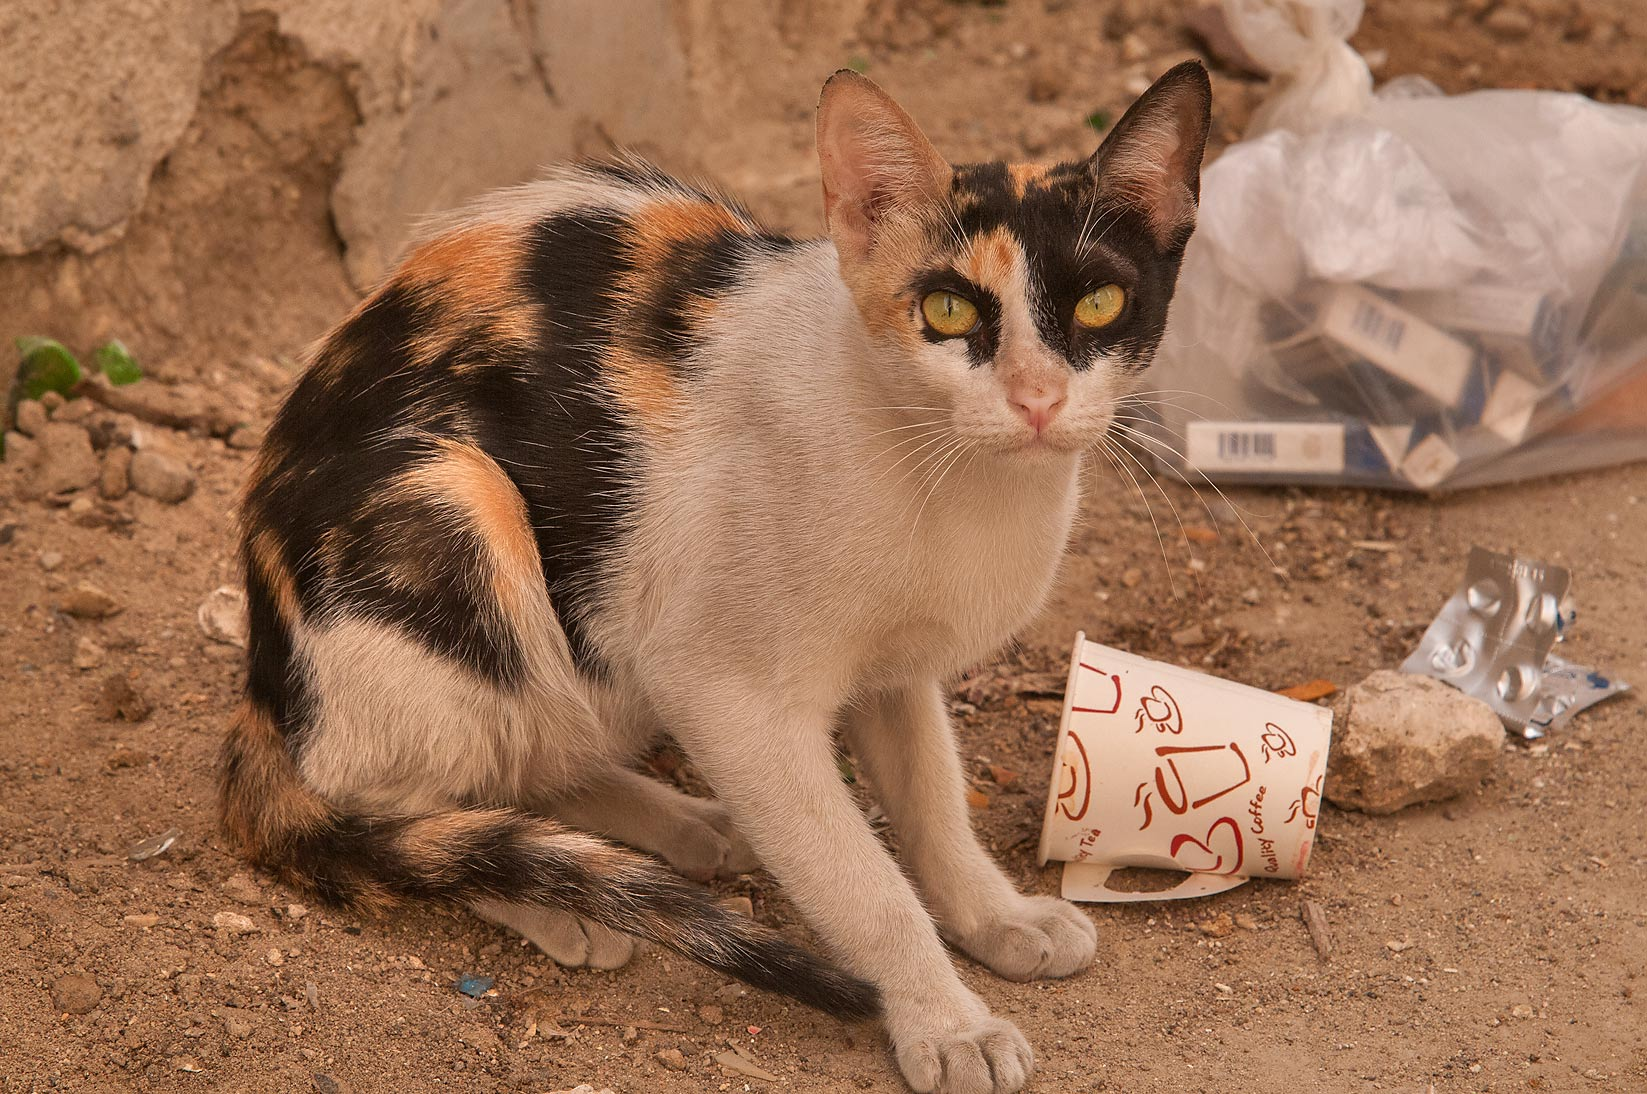 Calico cat near Al Maymoun St., Musheirib area. Doha, Qatar